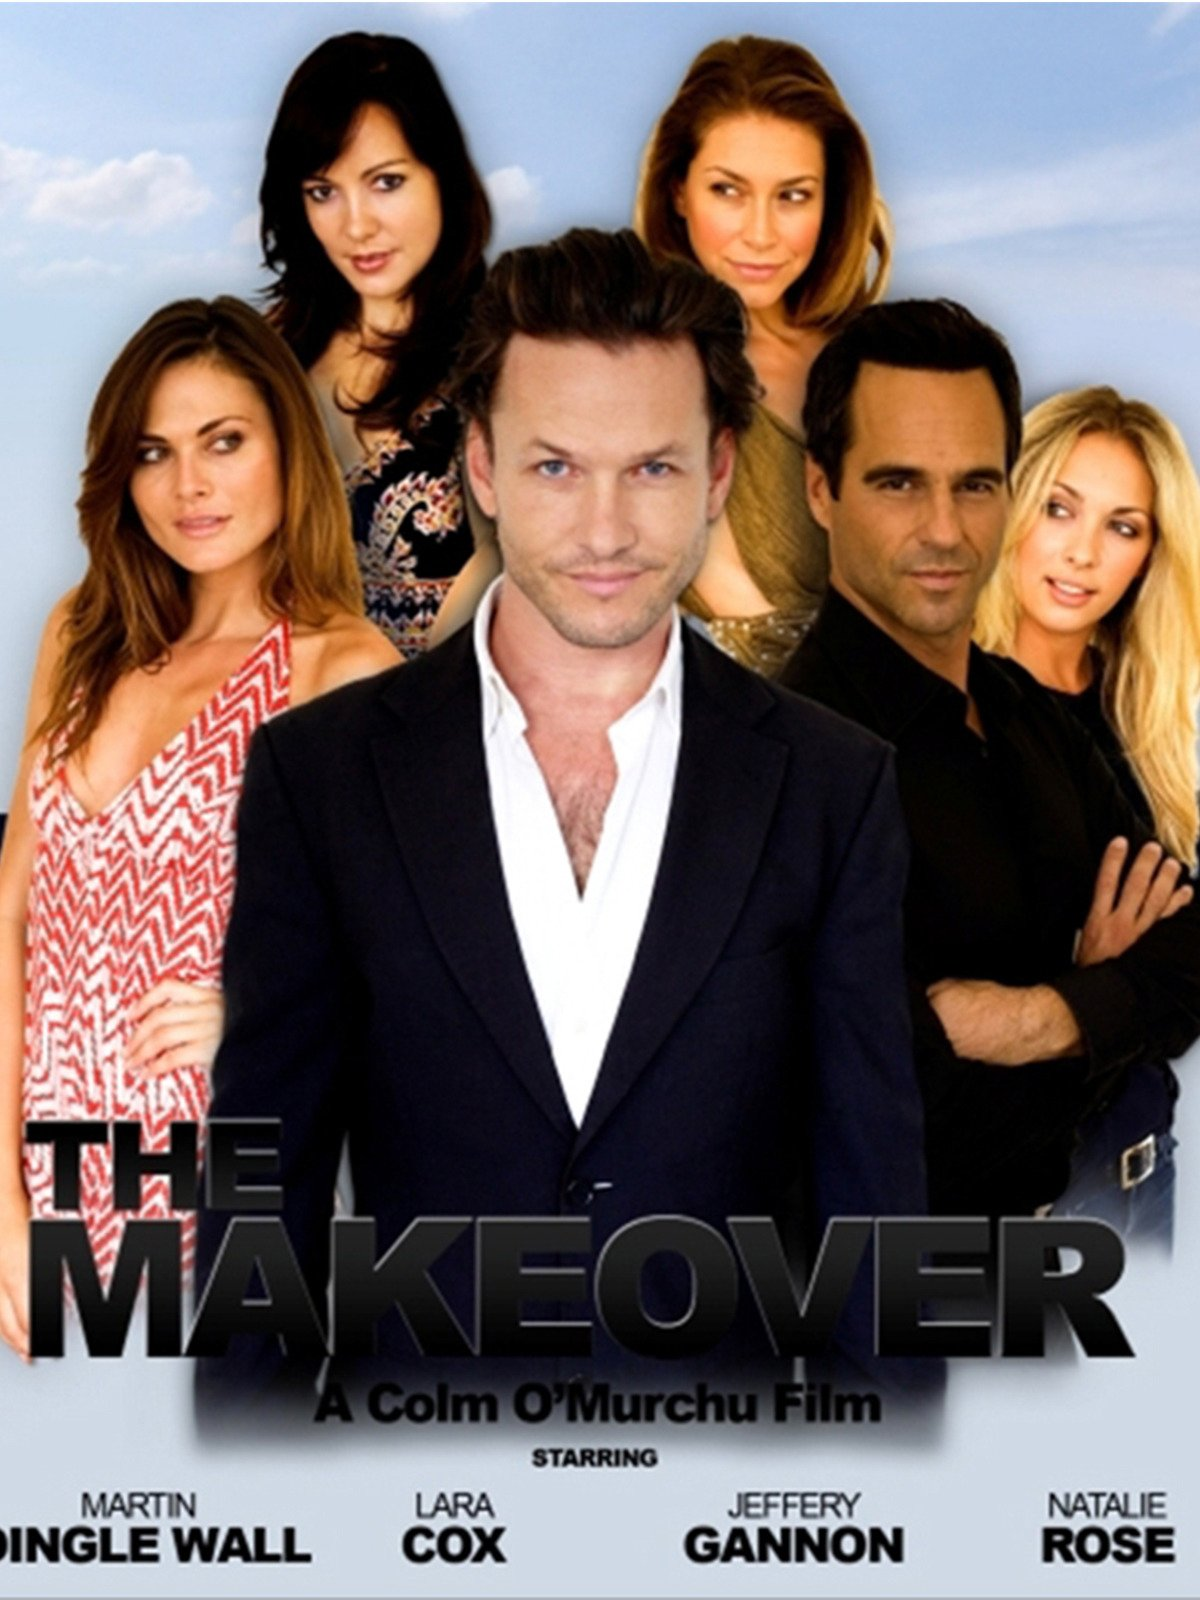 Amazon com: Watch The Makeover | Prime Video